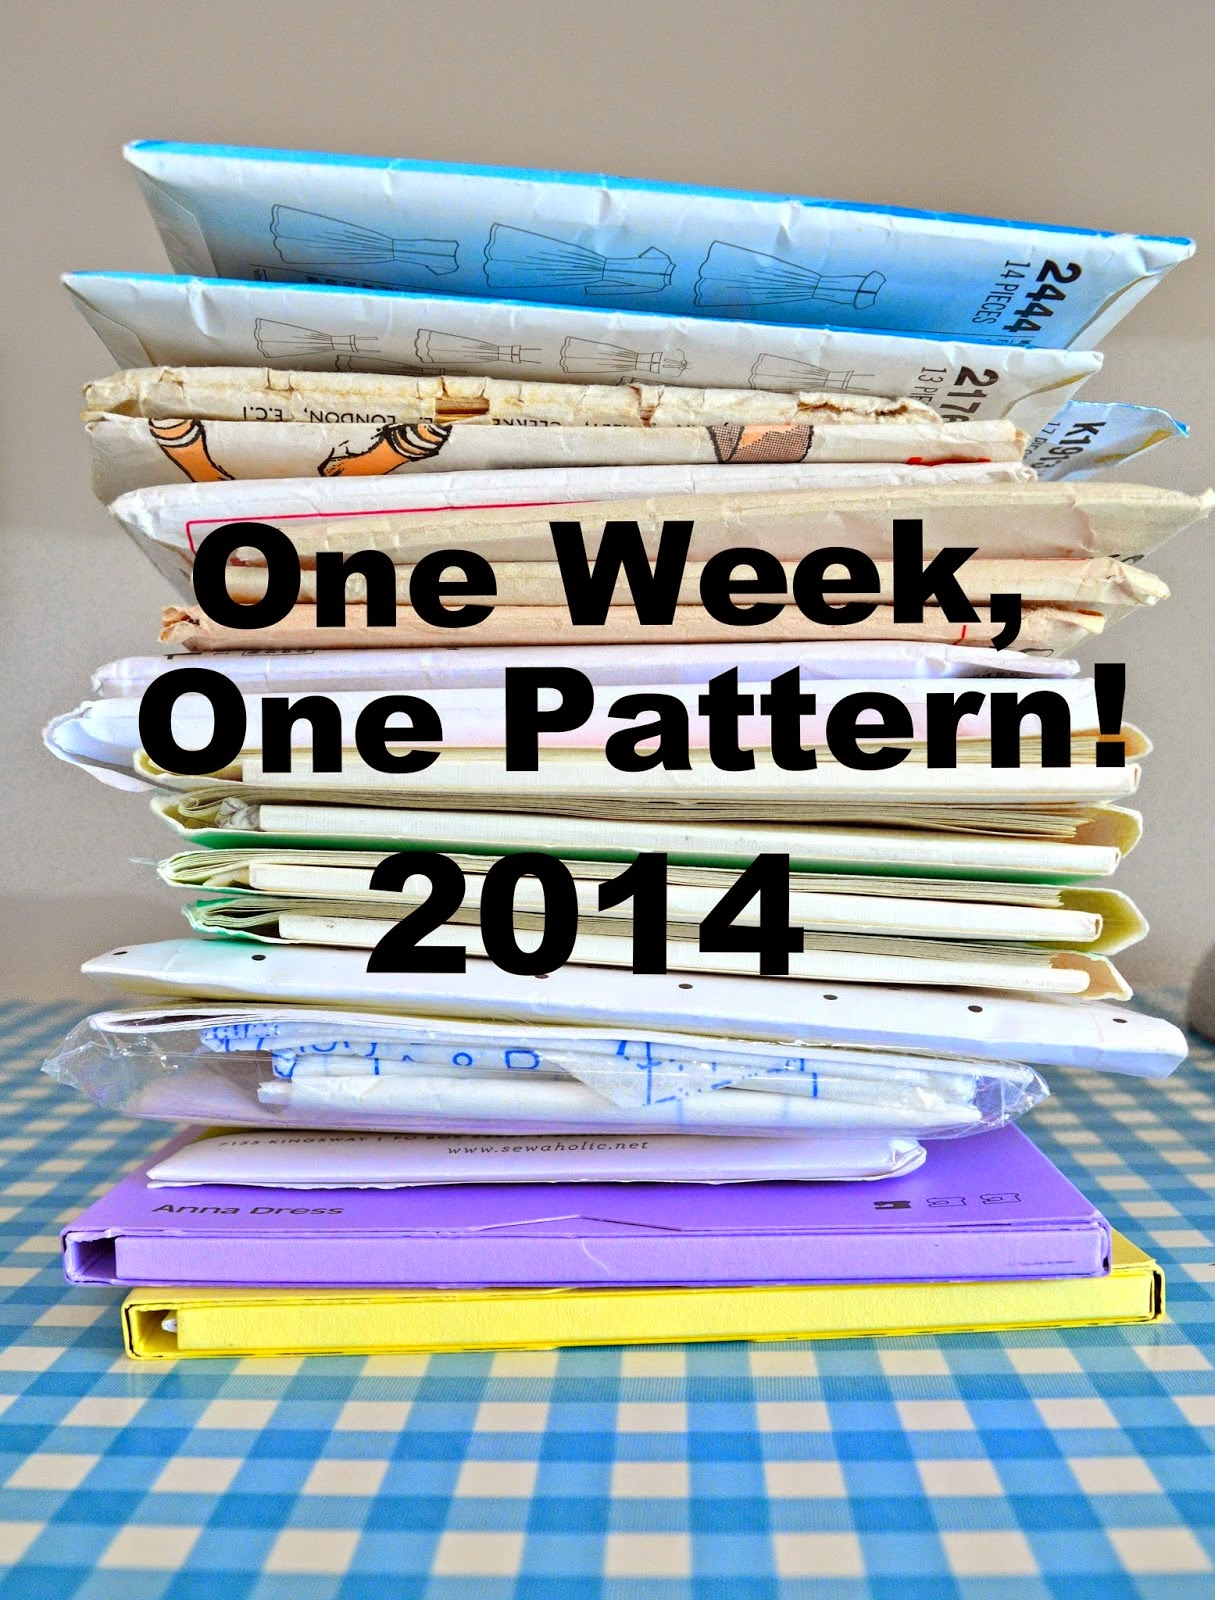 One Week One Pattern 2014